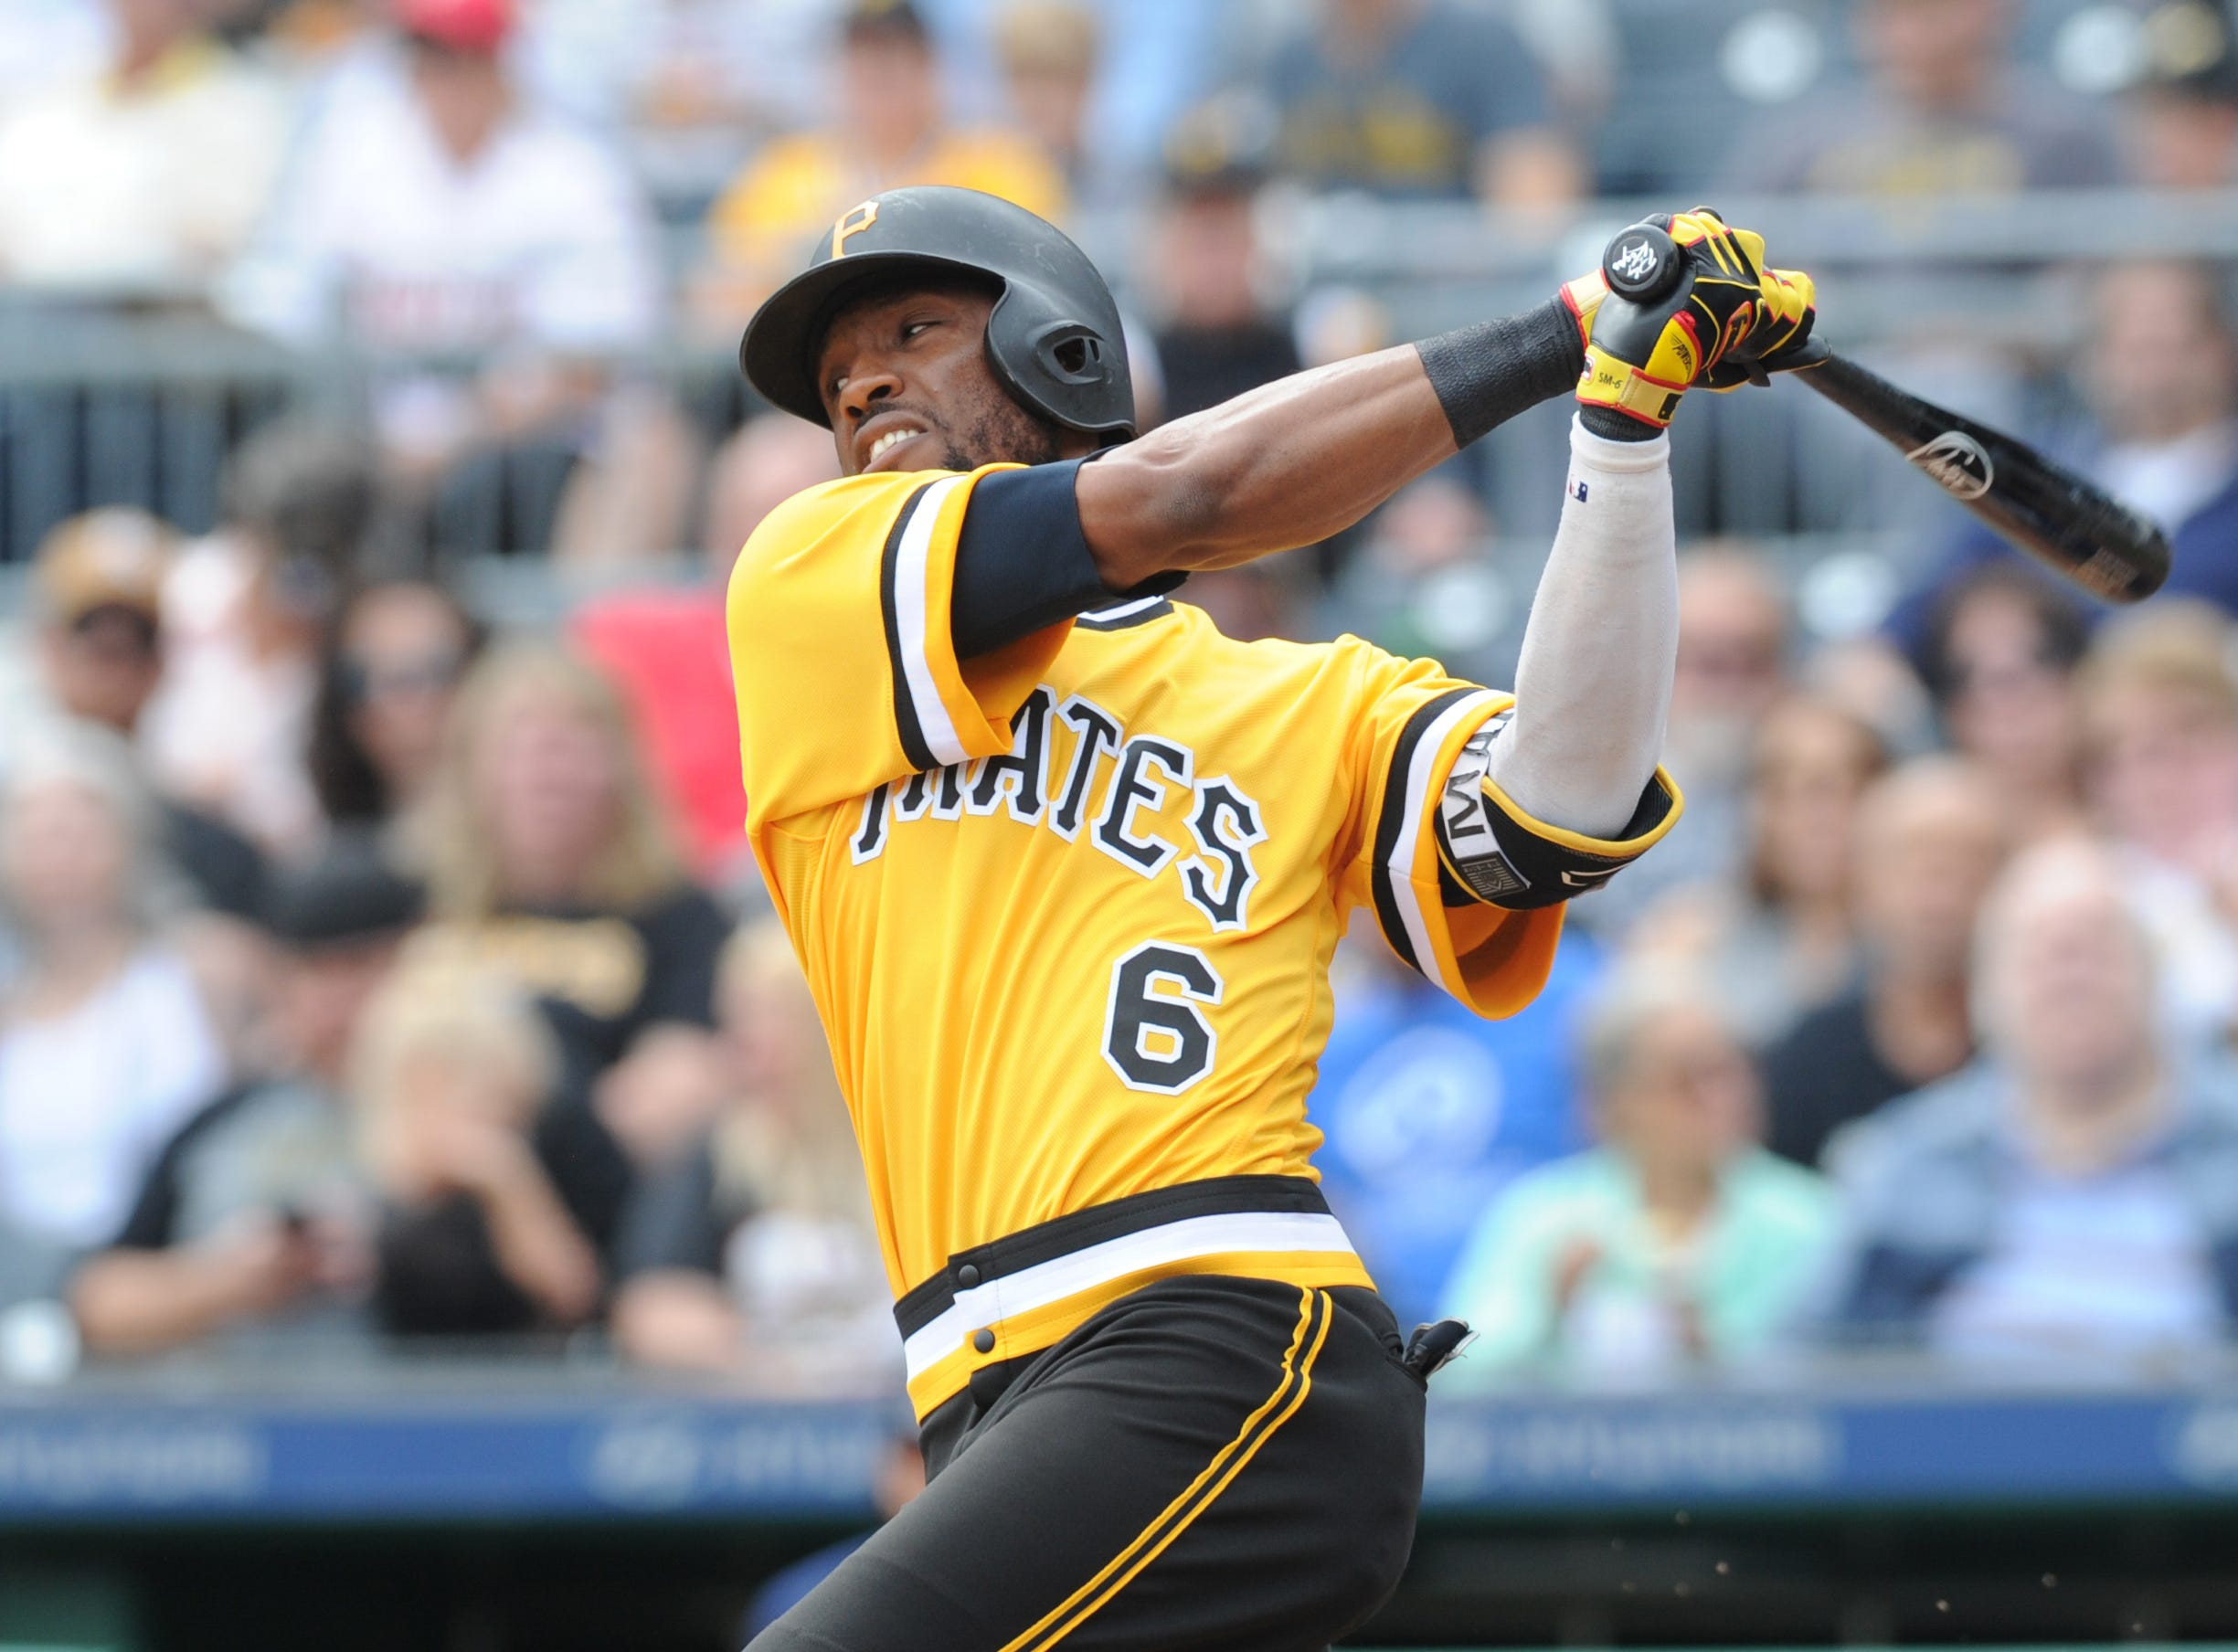 38. Starling Marte, Pittsburgh Pirates outfielder.